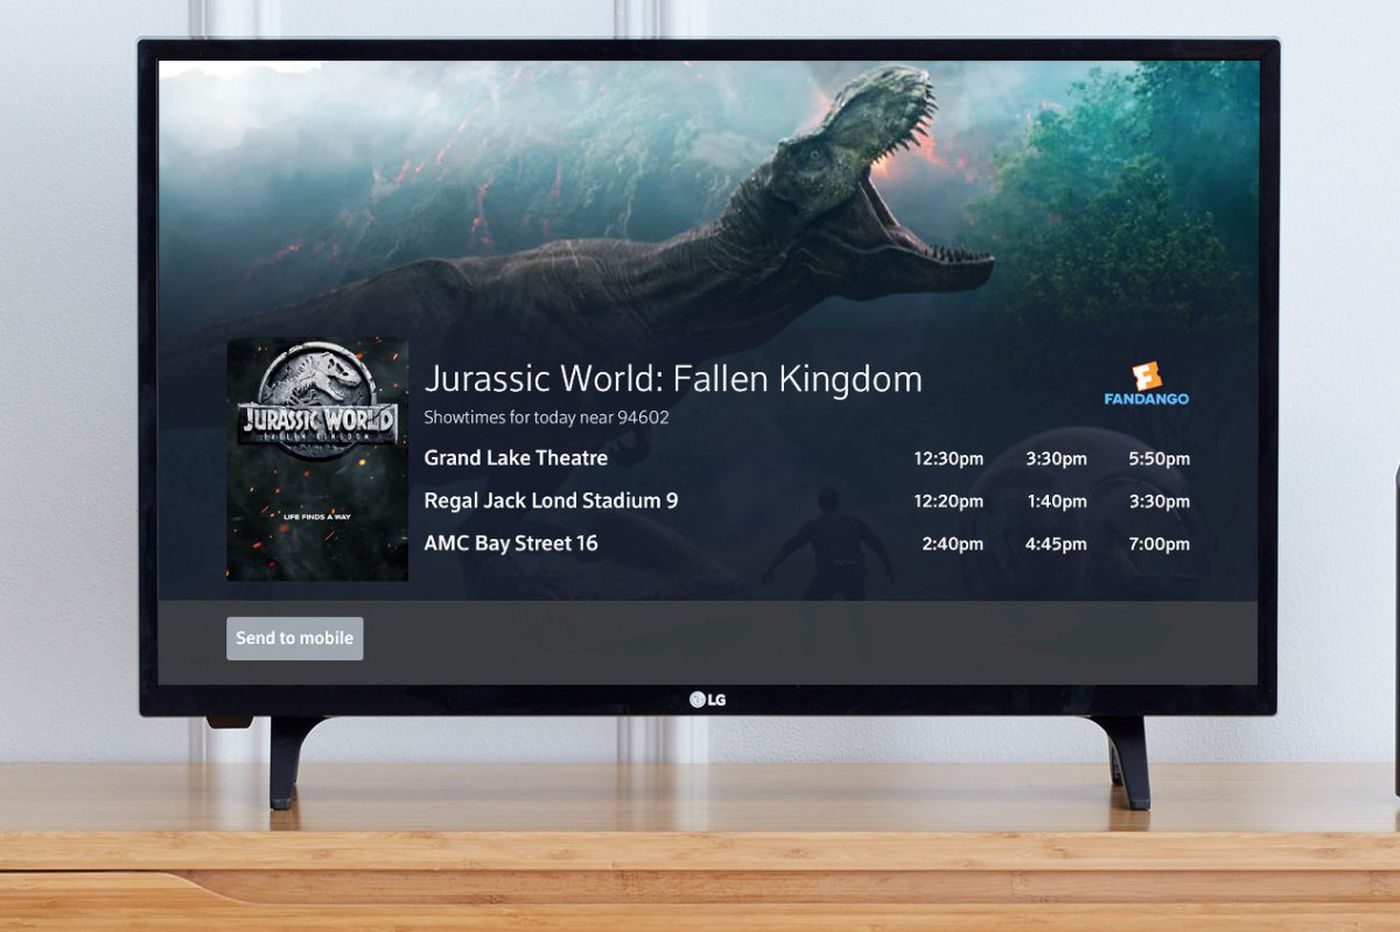 Comcast brings Fandango onto the TV through voice remote